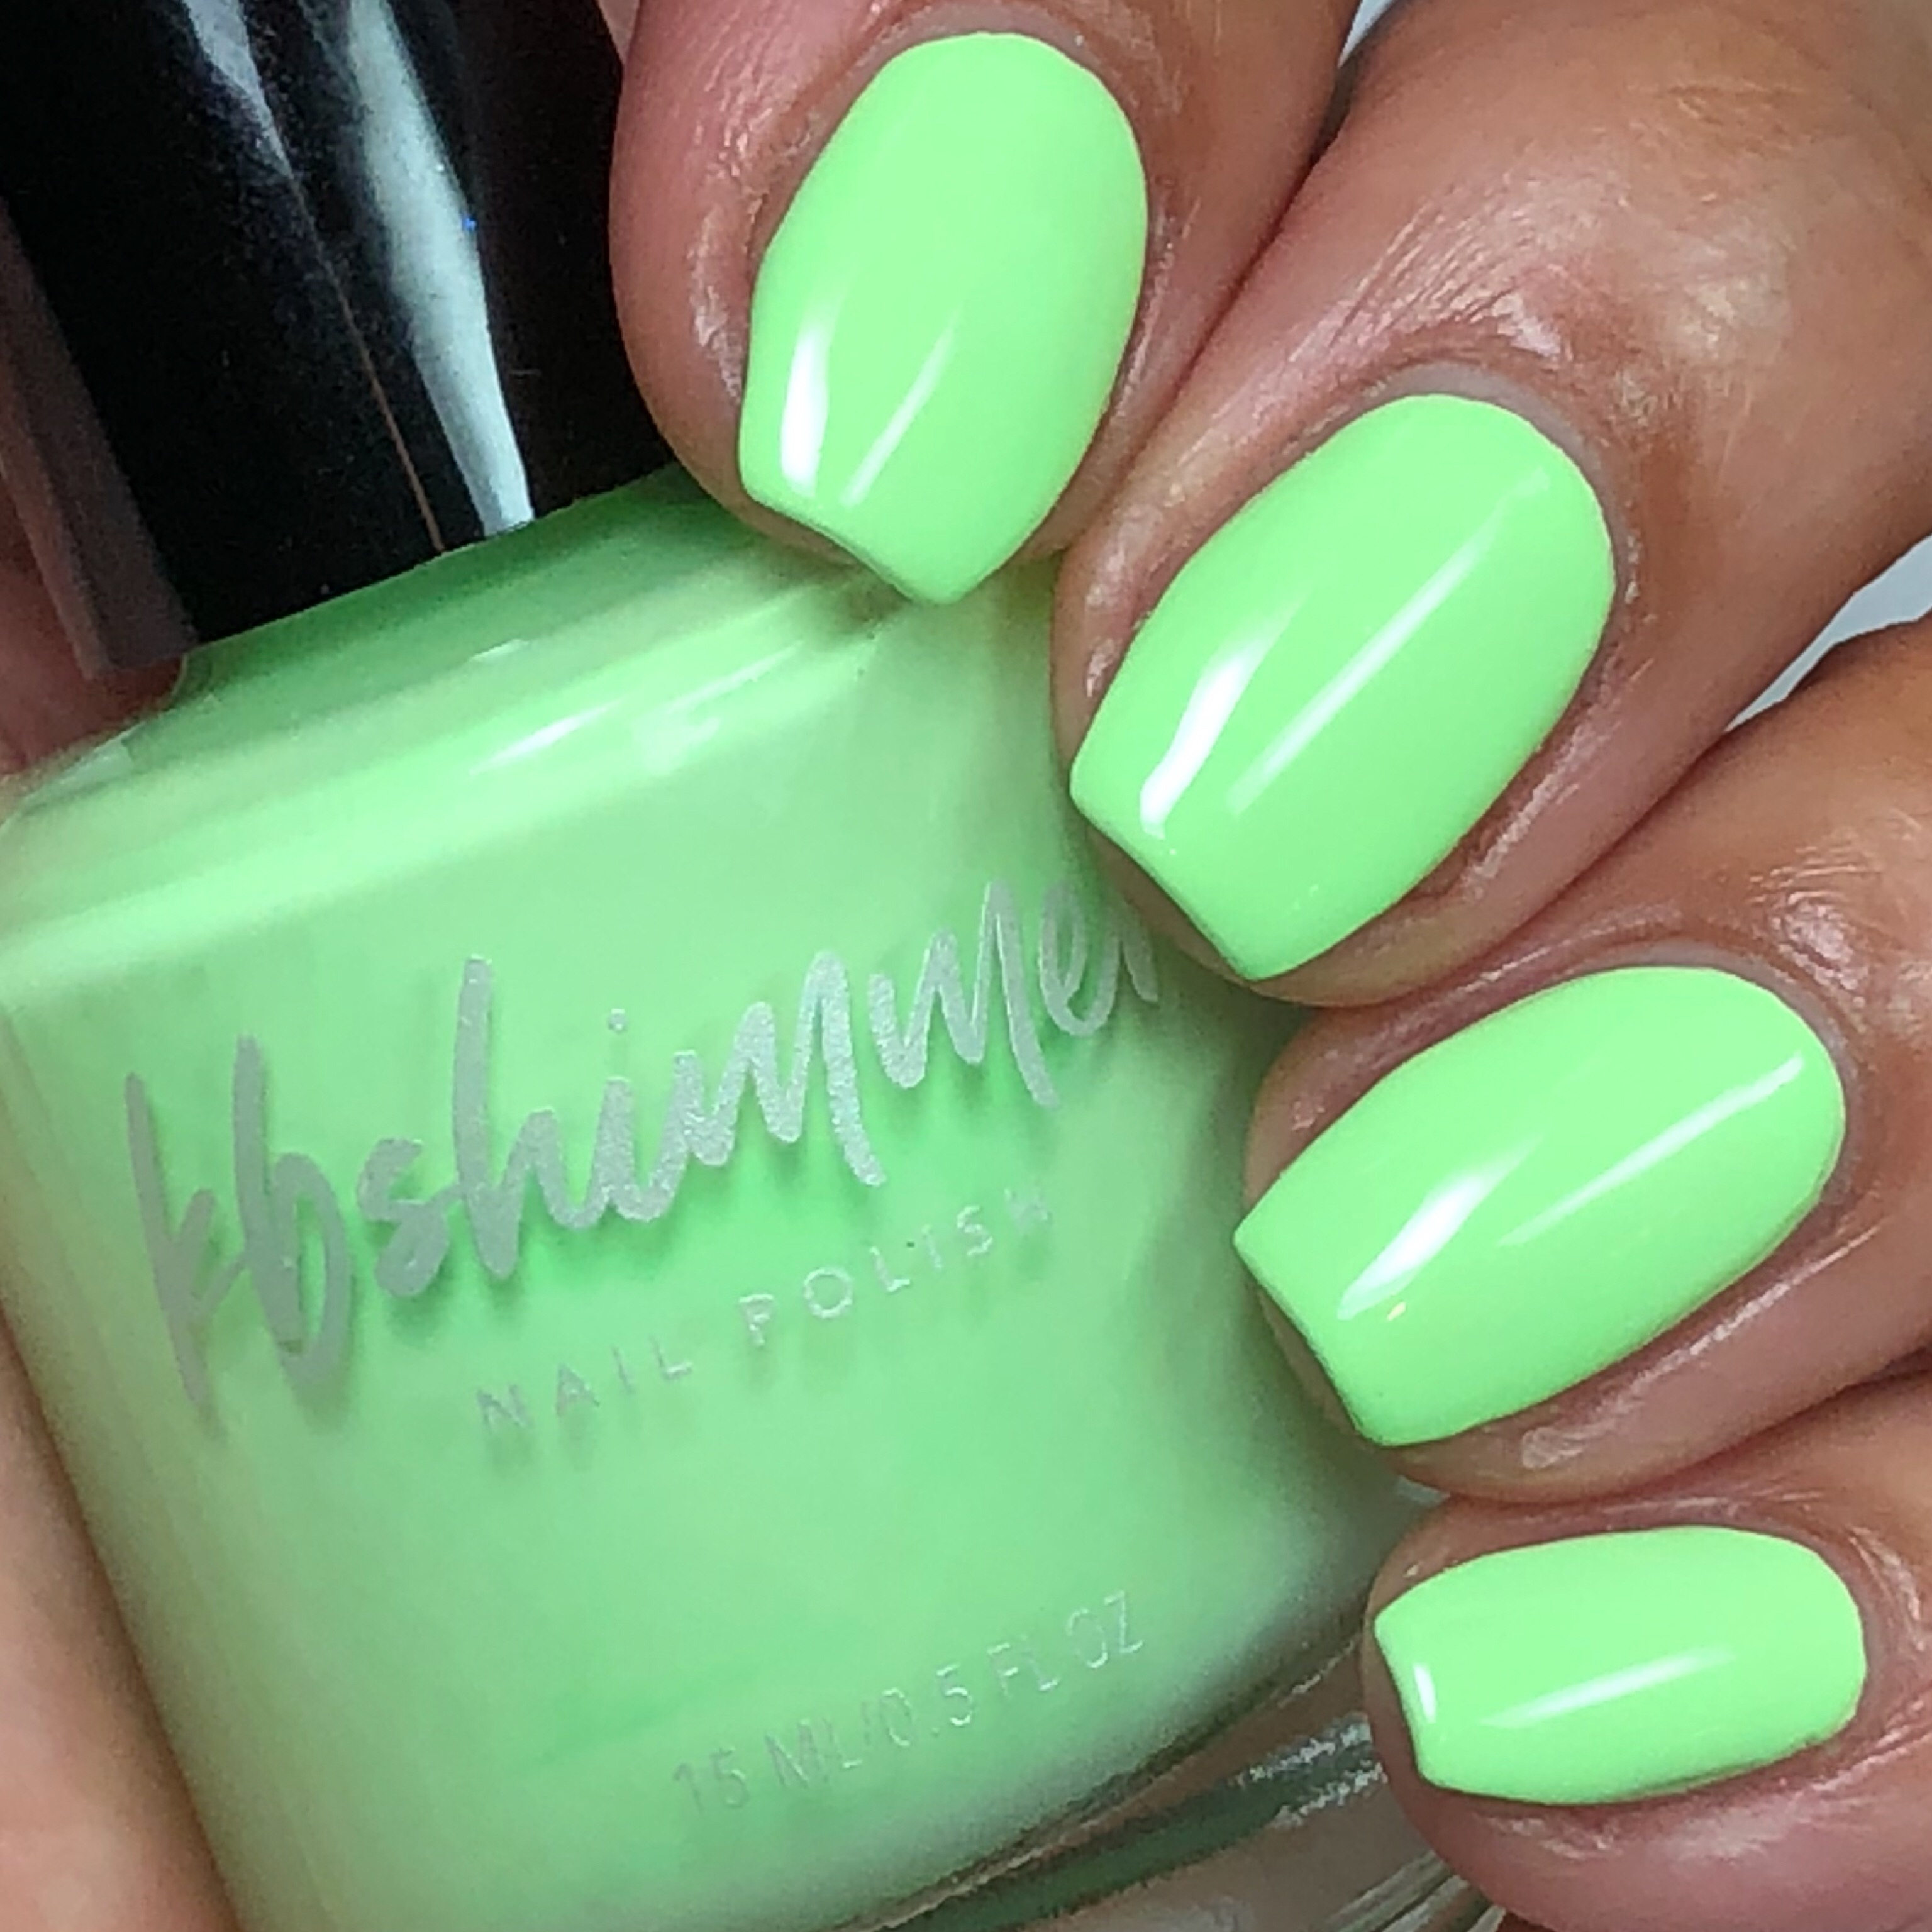 KBShimmer Ready For A Good Lime Cream Nail Polish